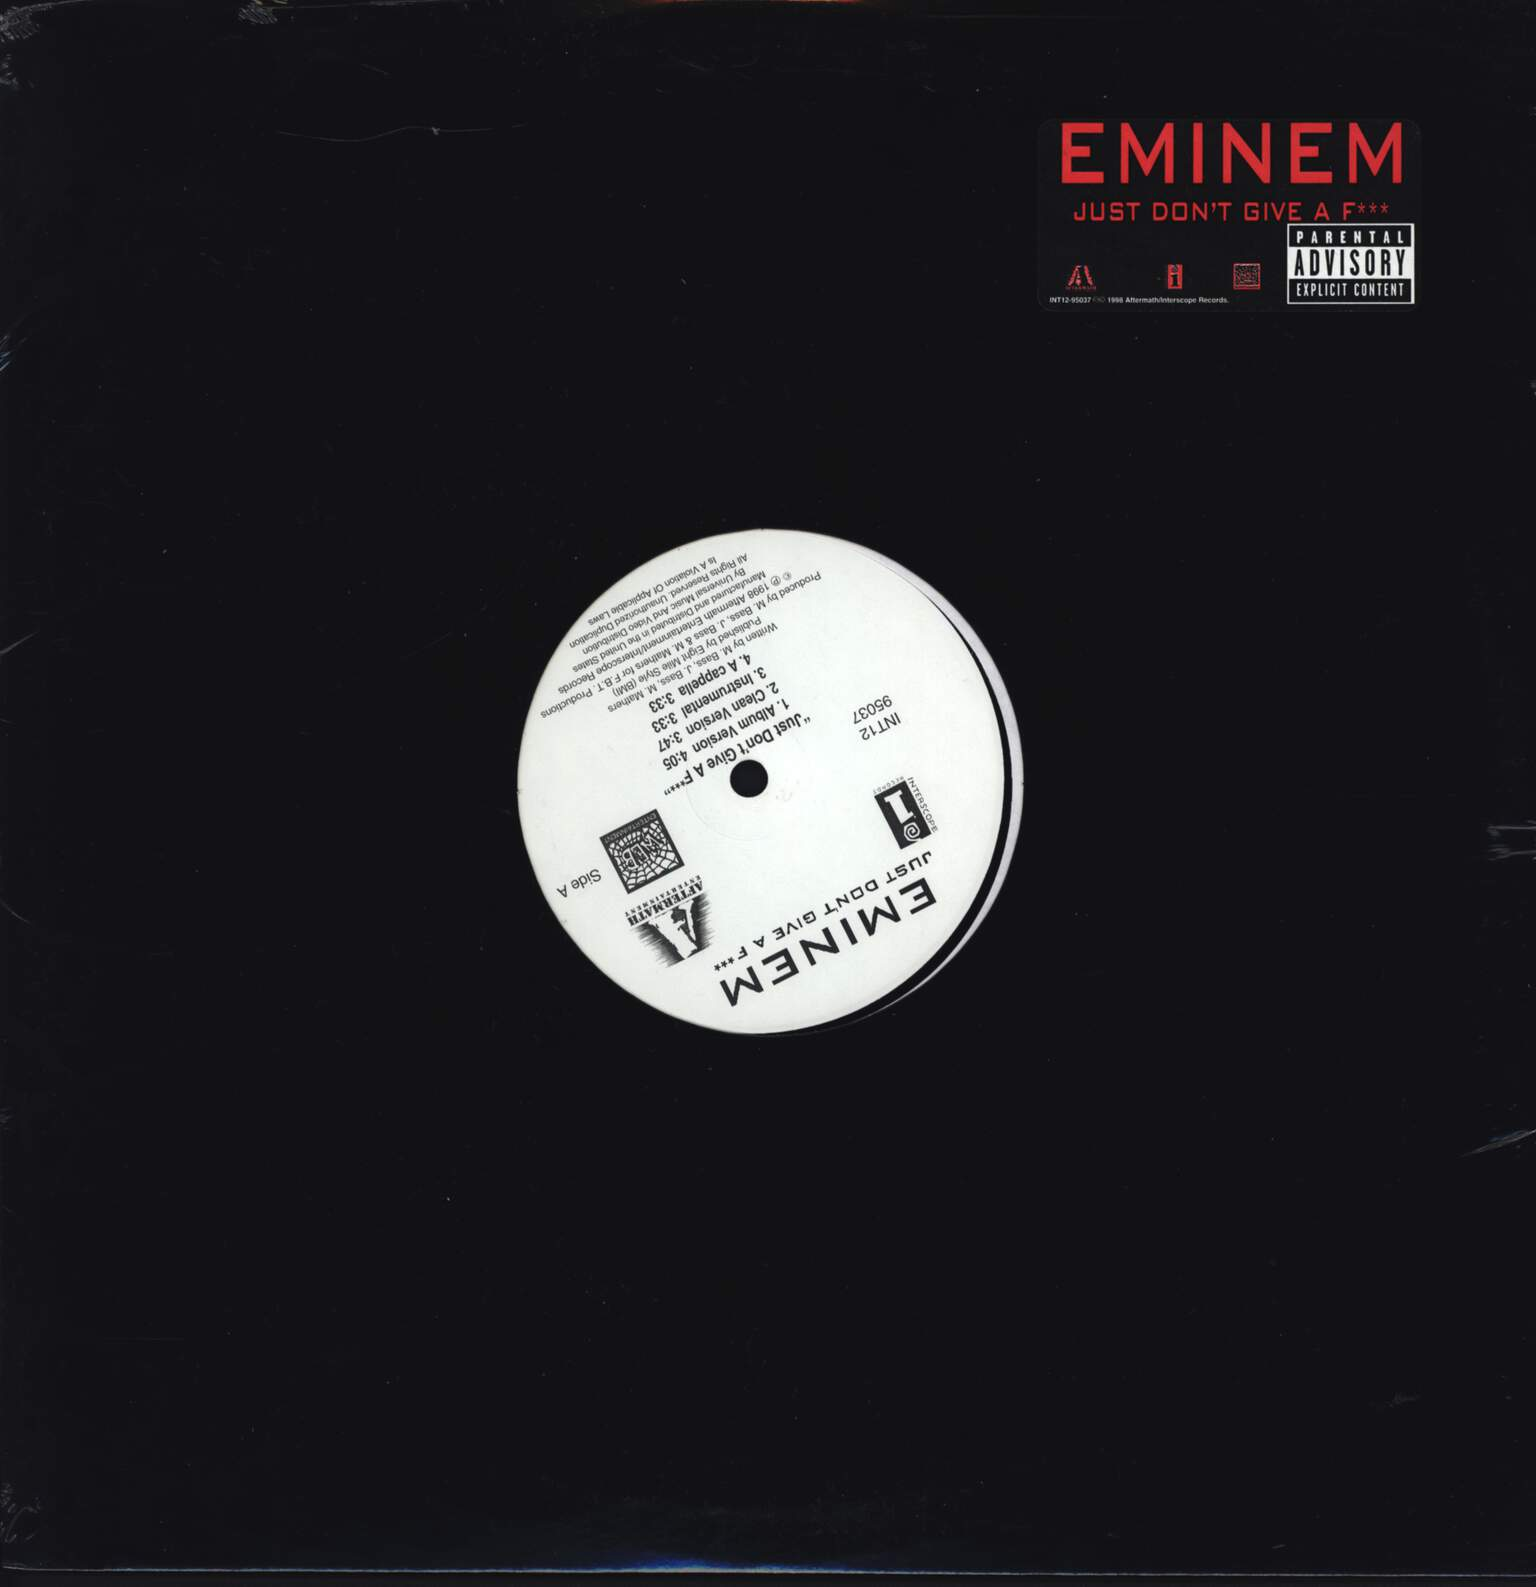 "Eminem: Just Don't Give A F***, 12"" Maxi Single (Vinyl)"